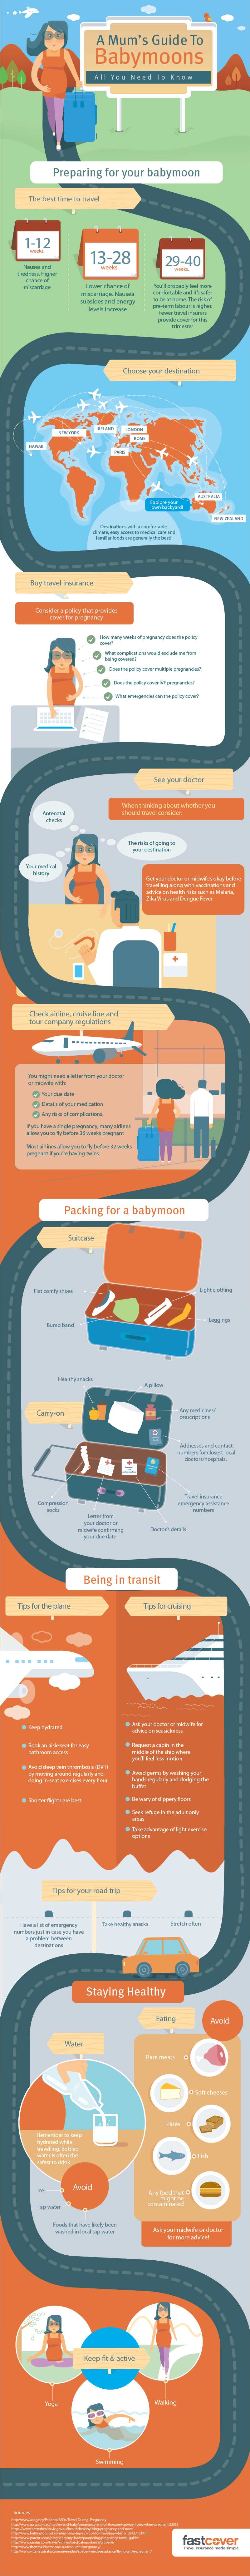 A Mum's Guide to Babymoons